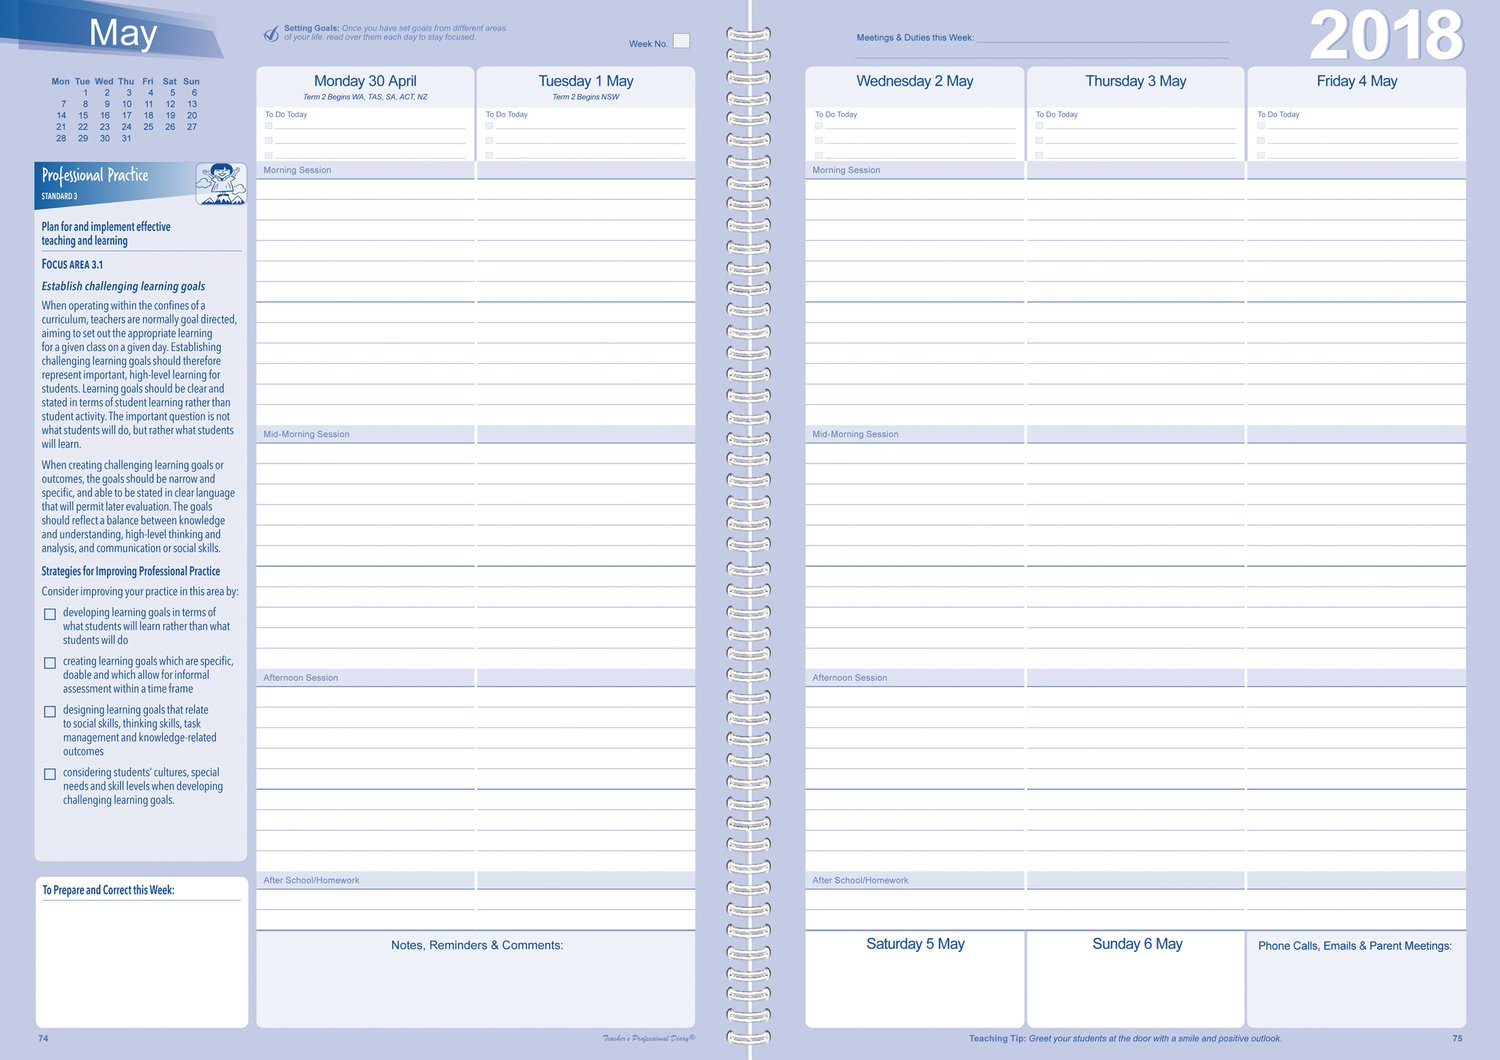 Secondary Professional Practice Weekly Planner 2018 - Wiro for Weekly Planner For Teachers Image